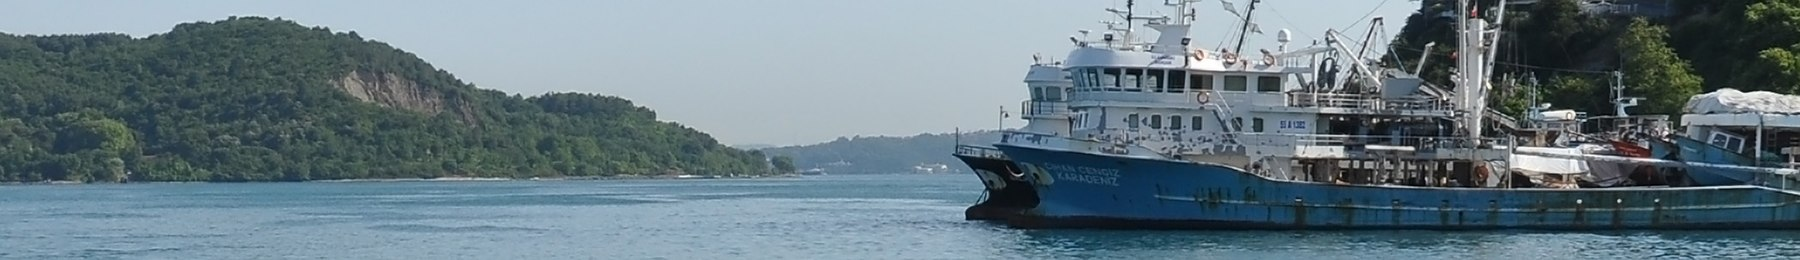 Istanbul Province banner Fishing boats.jpg